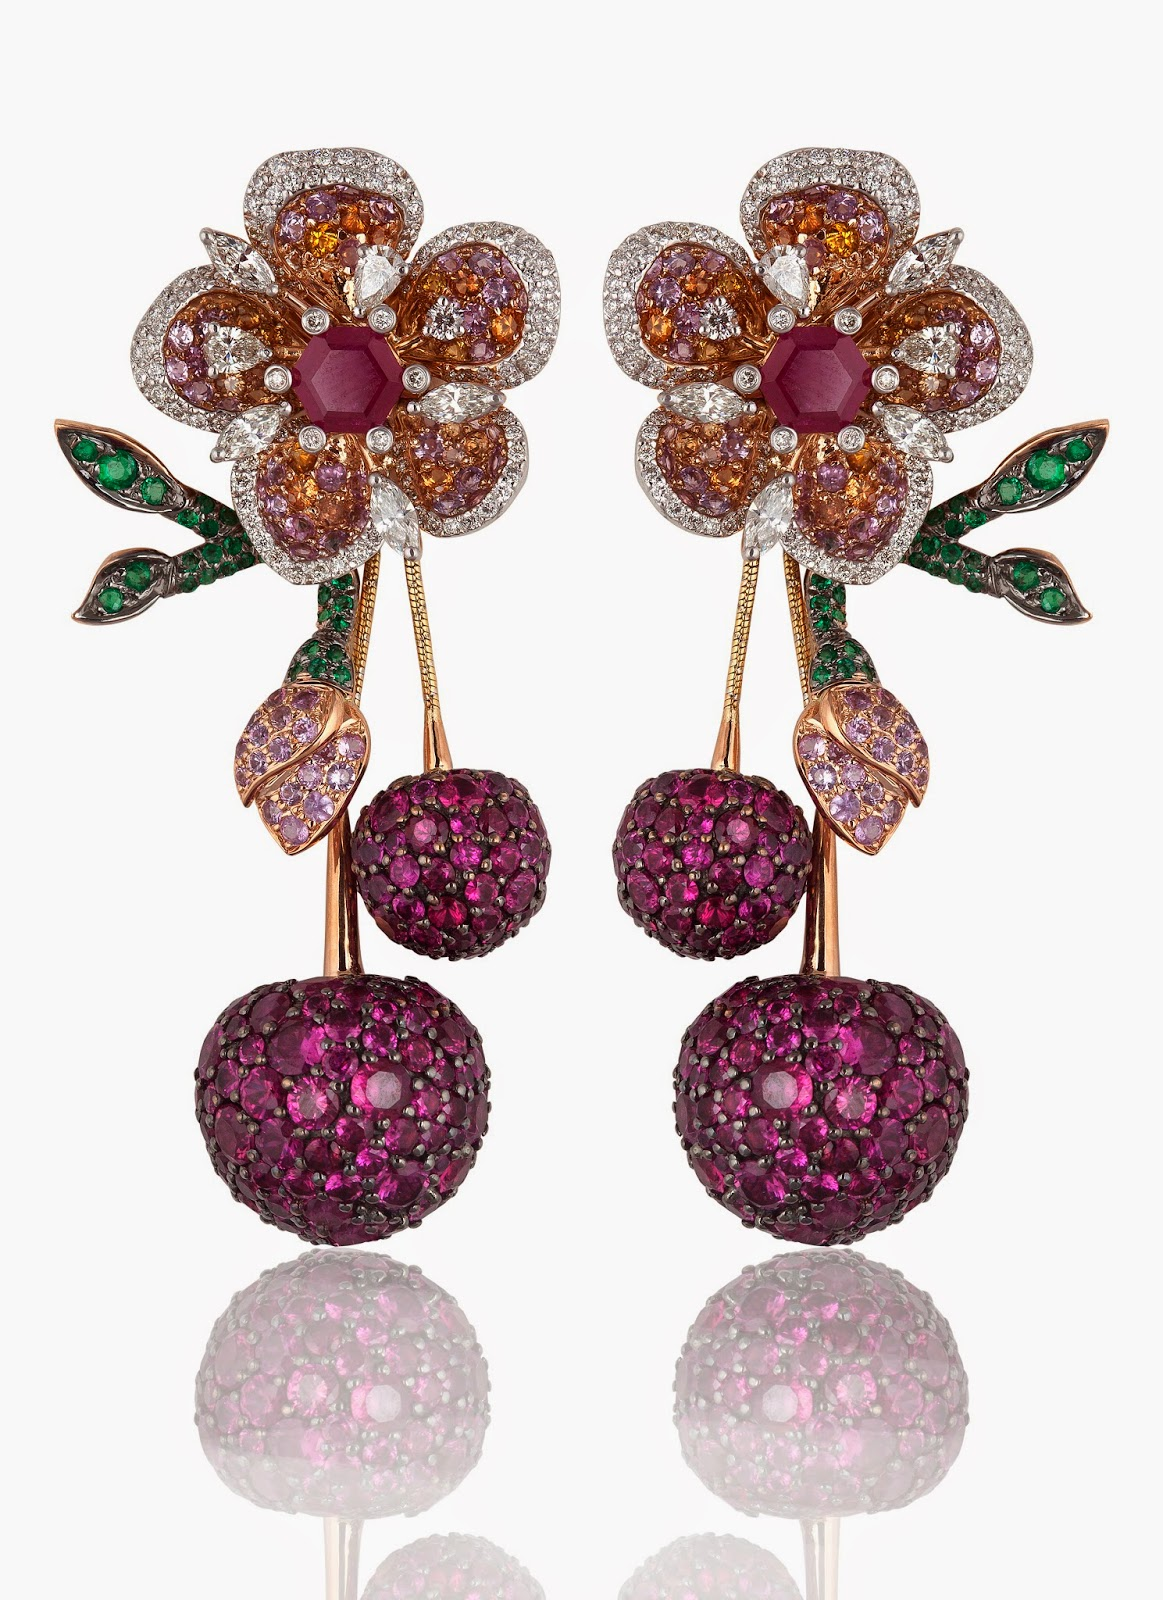 The Parure Earrings by Mirari Cherry Blossom Collection